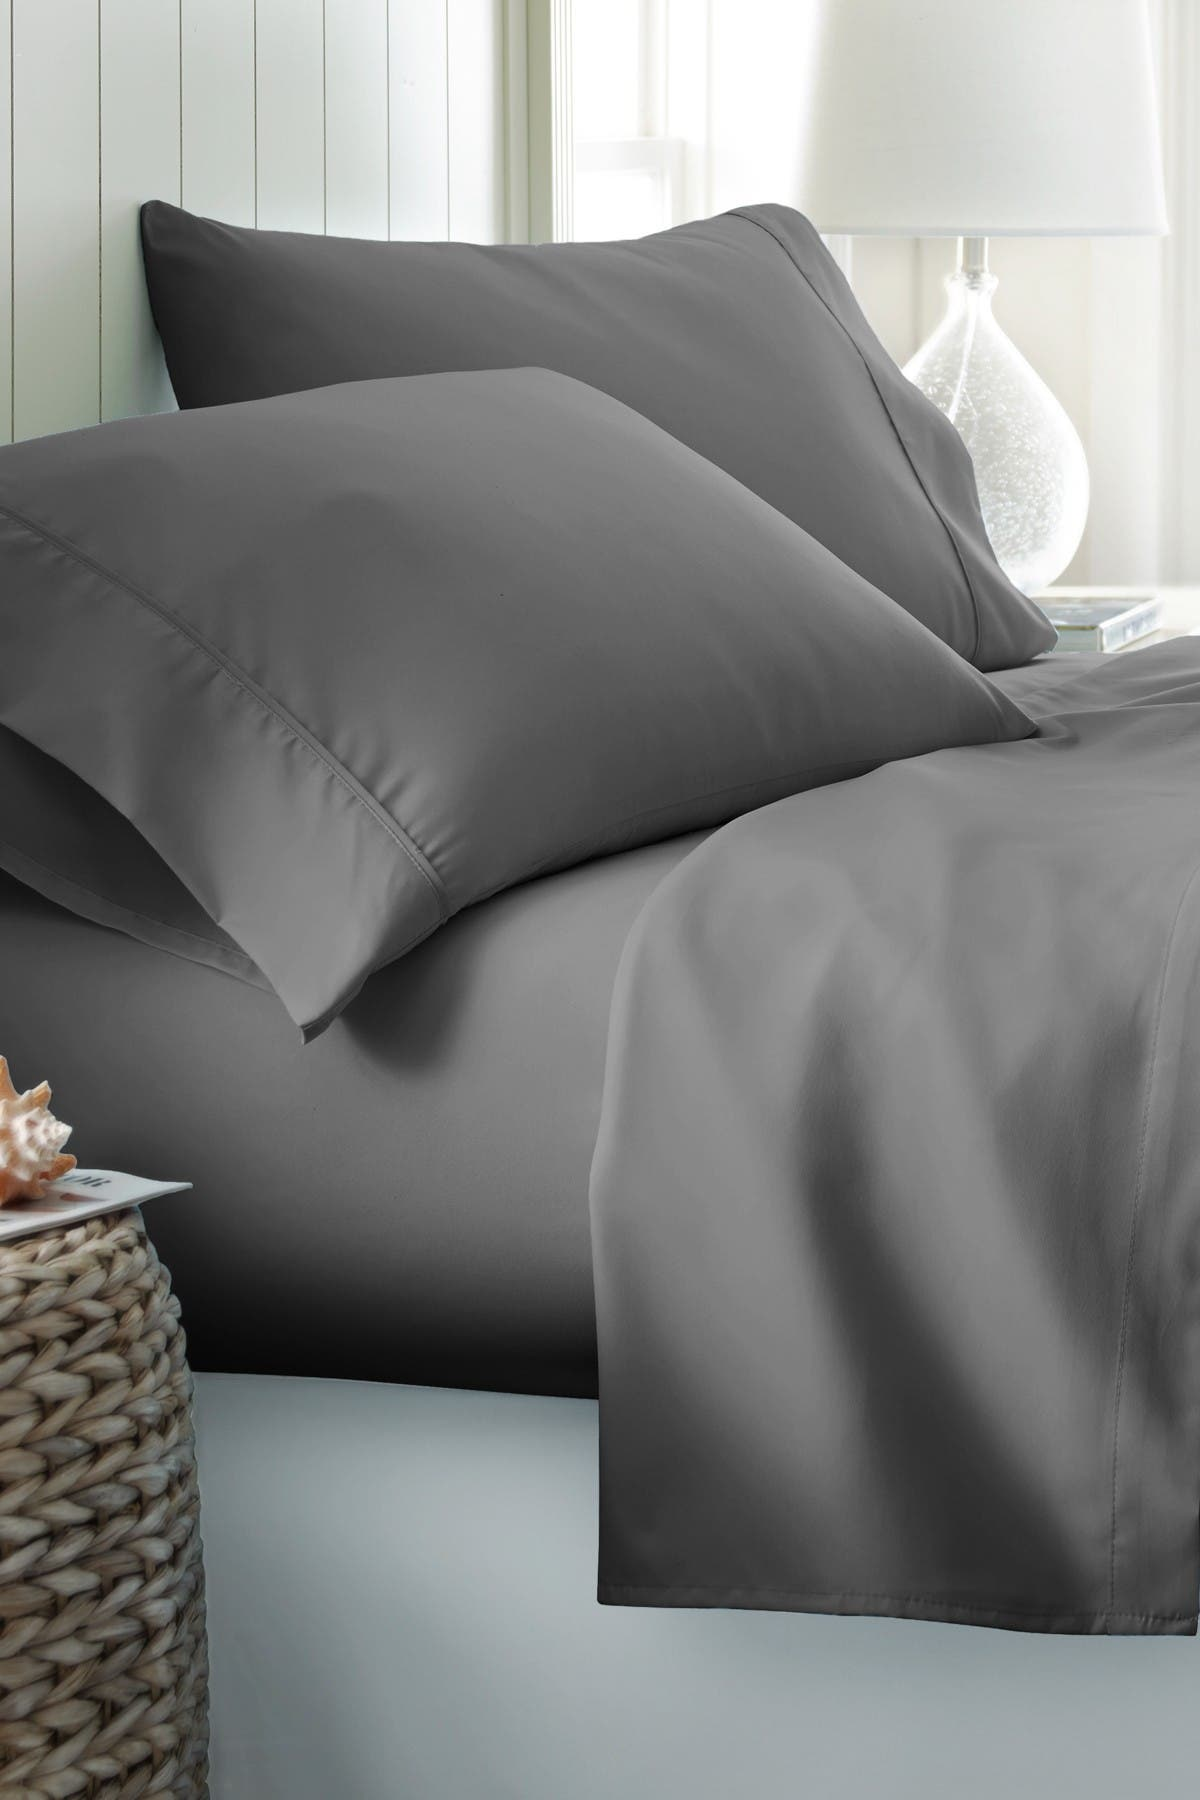 Image of IENJOY HOME Hotel Collection Premium Ultra Soft 4-Piece King Bed Sheet Set - Gray